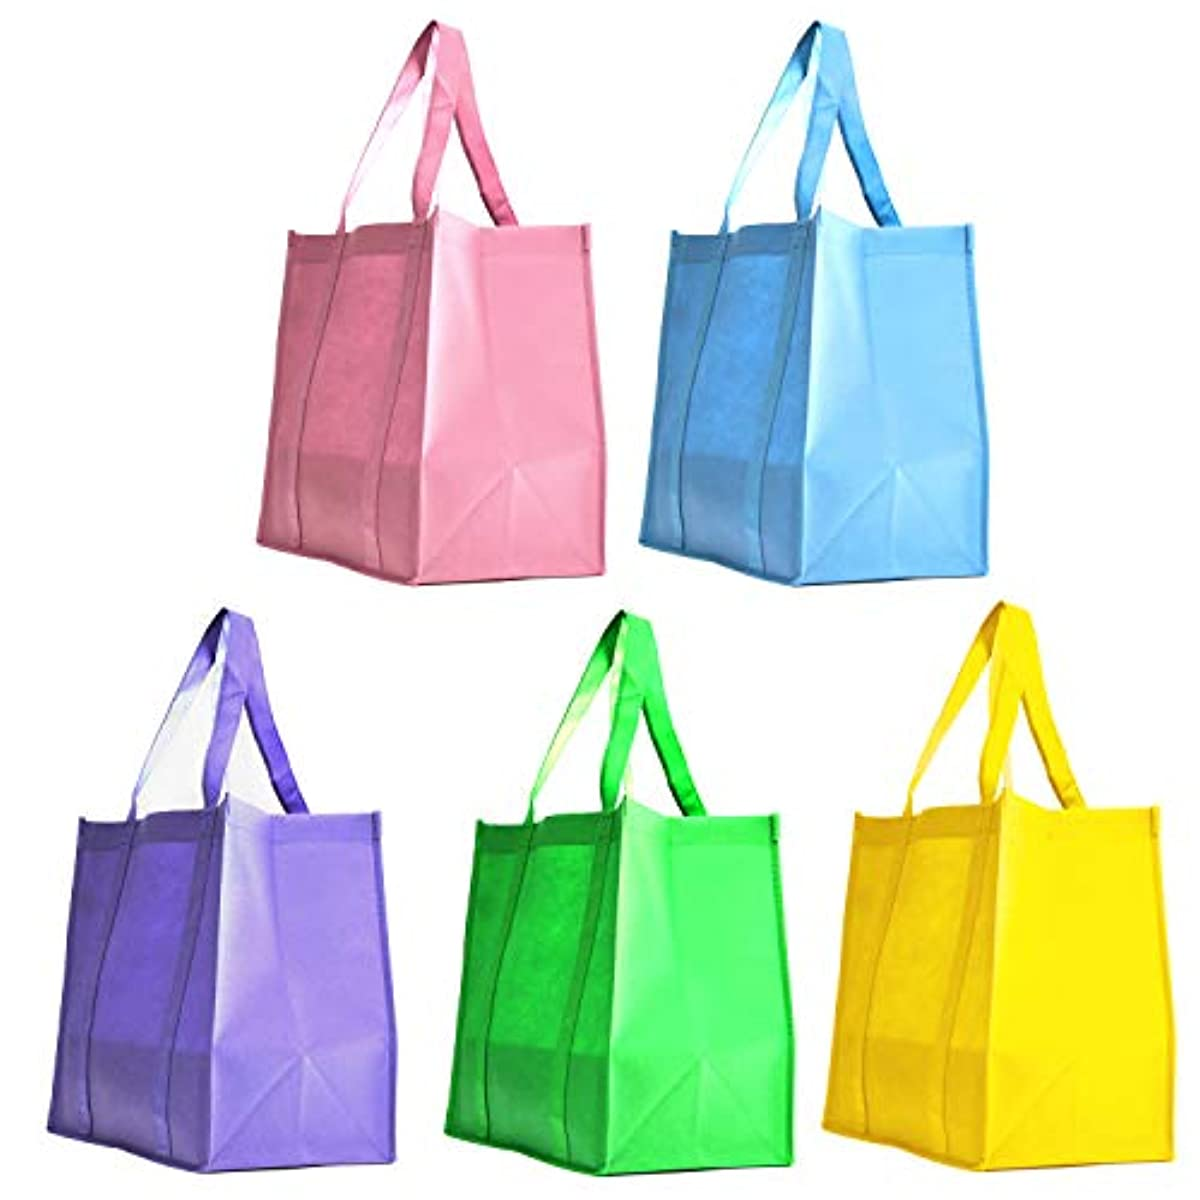 [ 5 Pack ] 5 Assorted Color Party Favor Gift Bags Non-Woven Polypropelyne Grocery Shopping Promotional Tote Bags for Birthday, Wedding Giveaway, Church Easter Goodie Bags (Soft Spring, 5 Pack)